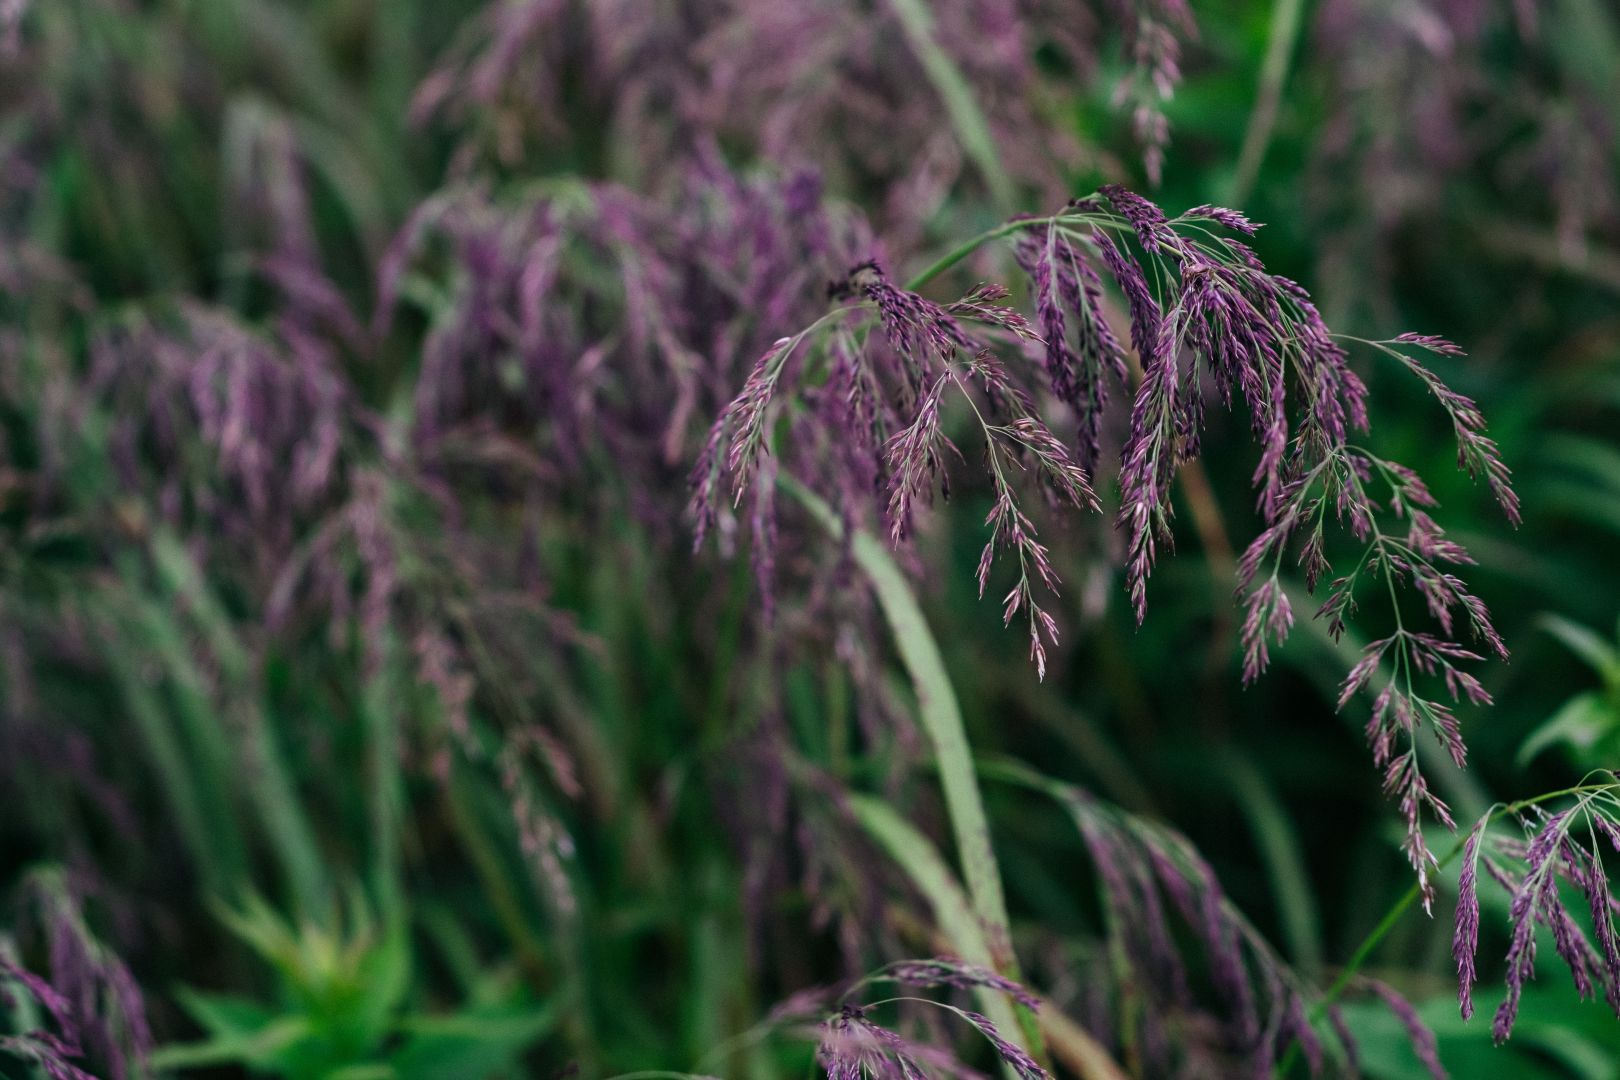 A photo depicting Purple Grass